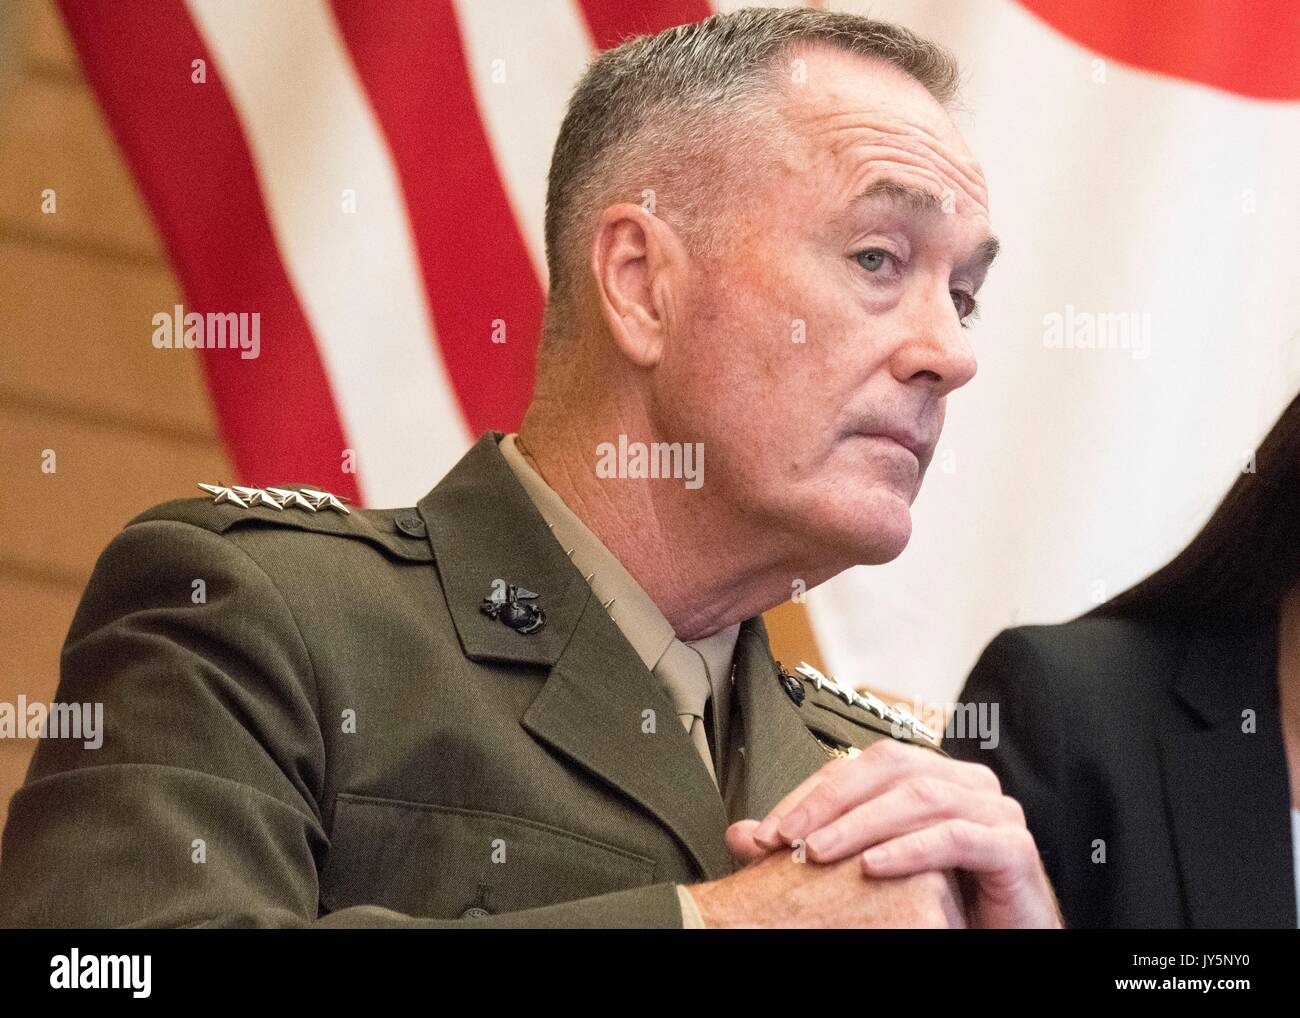 Tokyo, Japan. 18th Aug, 2017. U.S. Chairman of the Joint Chiefs Gen. Joseph Dunford during a meeting with Japanese Stock Photo